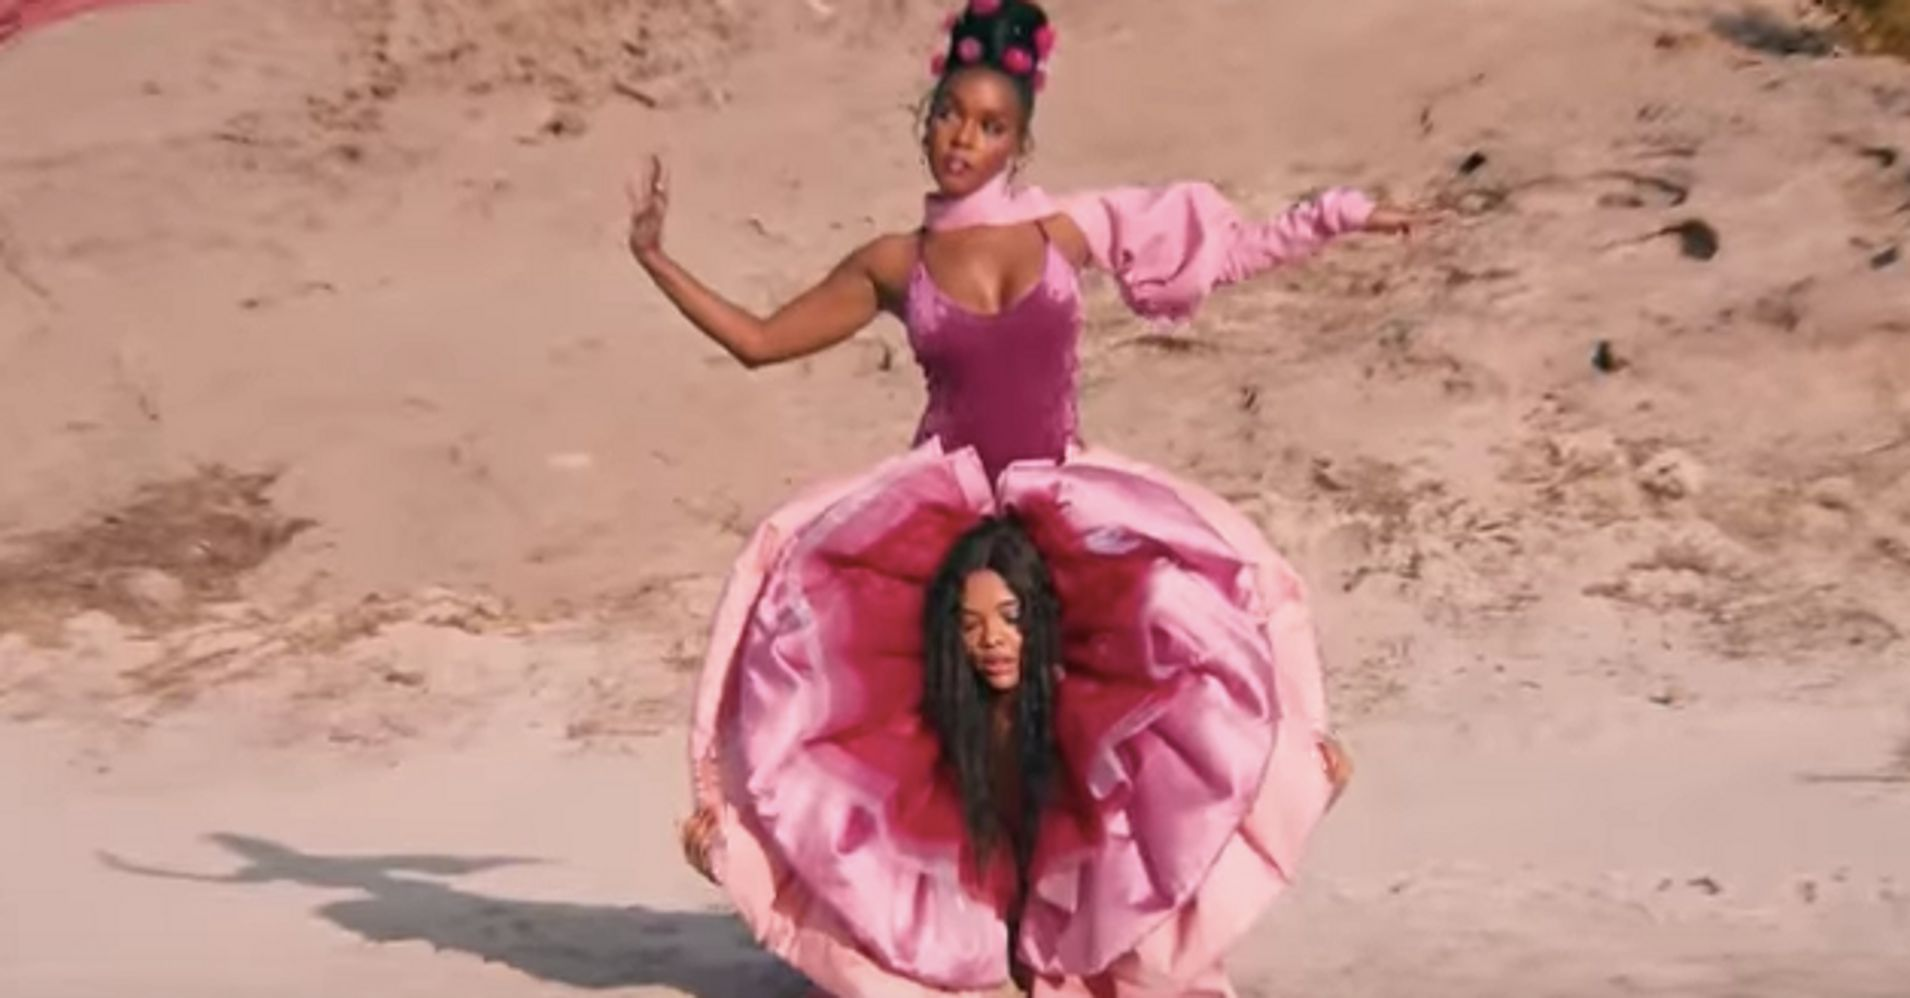 Run, Don't Walk: Janelle Monáe May Be Mass-Producing Those Vagina Pants